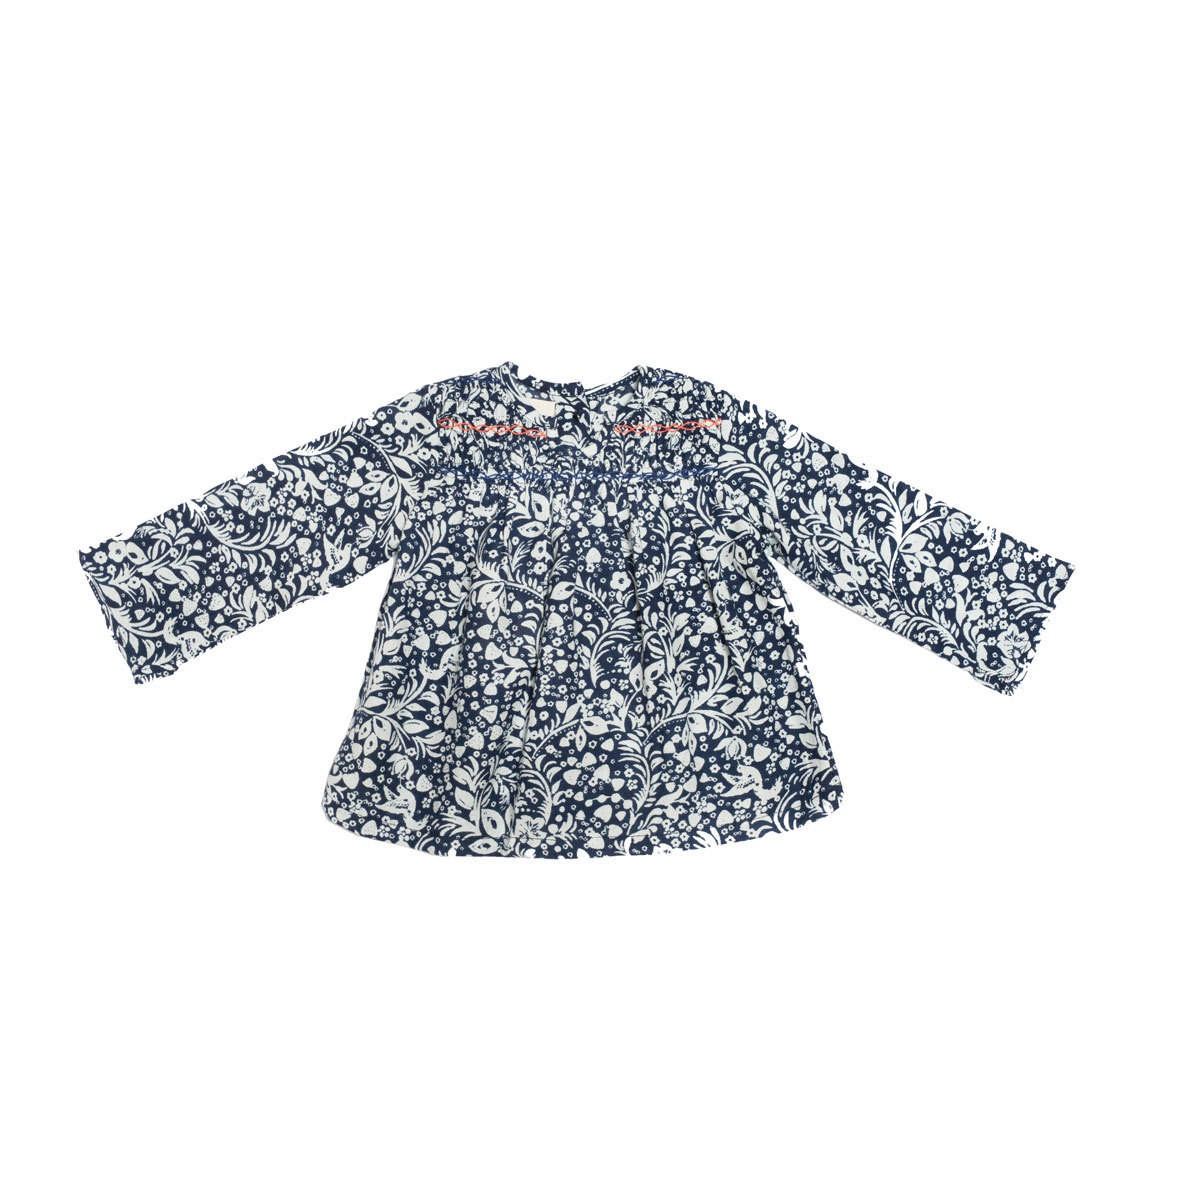 Hauts bébé Blouse Smocky - Strawberry Flowers - 6/9 mois Blouse Smocky - Strawberry Flowers - 6/9 mois